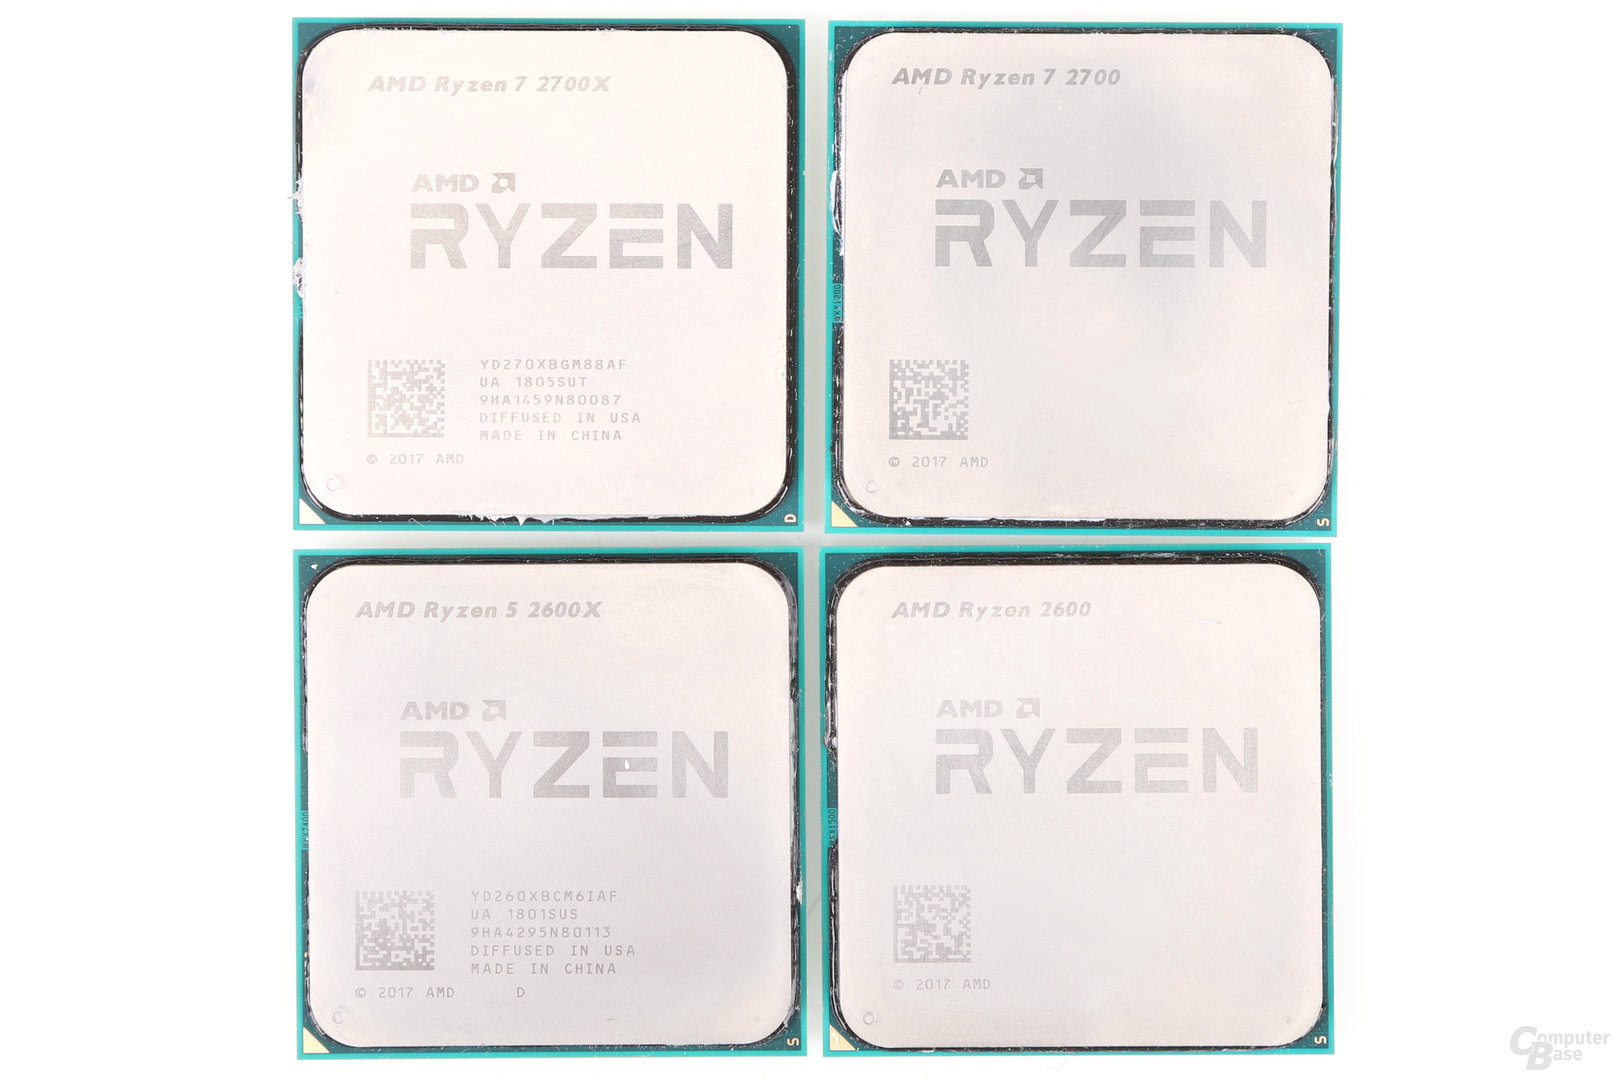 AMD Ryzen 7 2700X, 2700, 5 2600X & 2600 im Test - ComputerBase